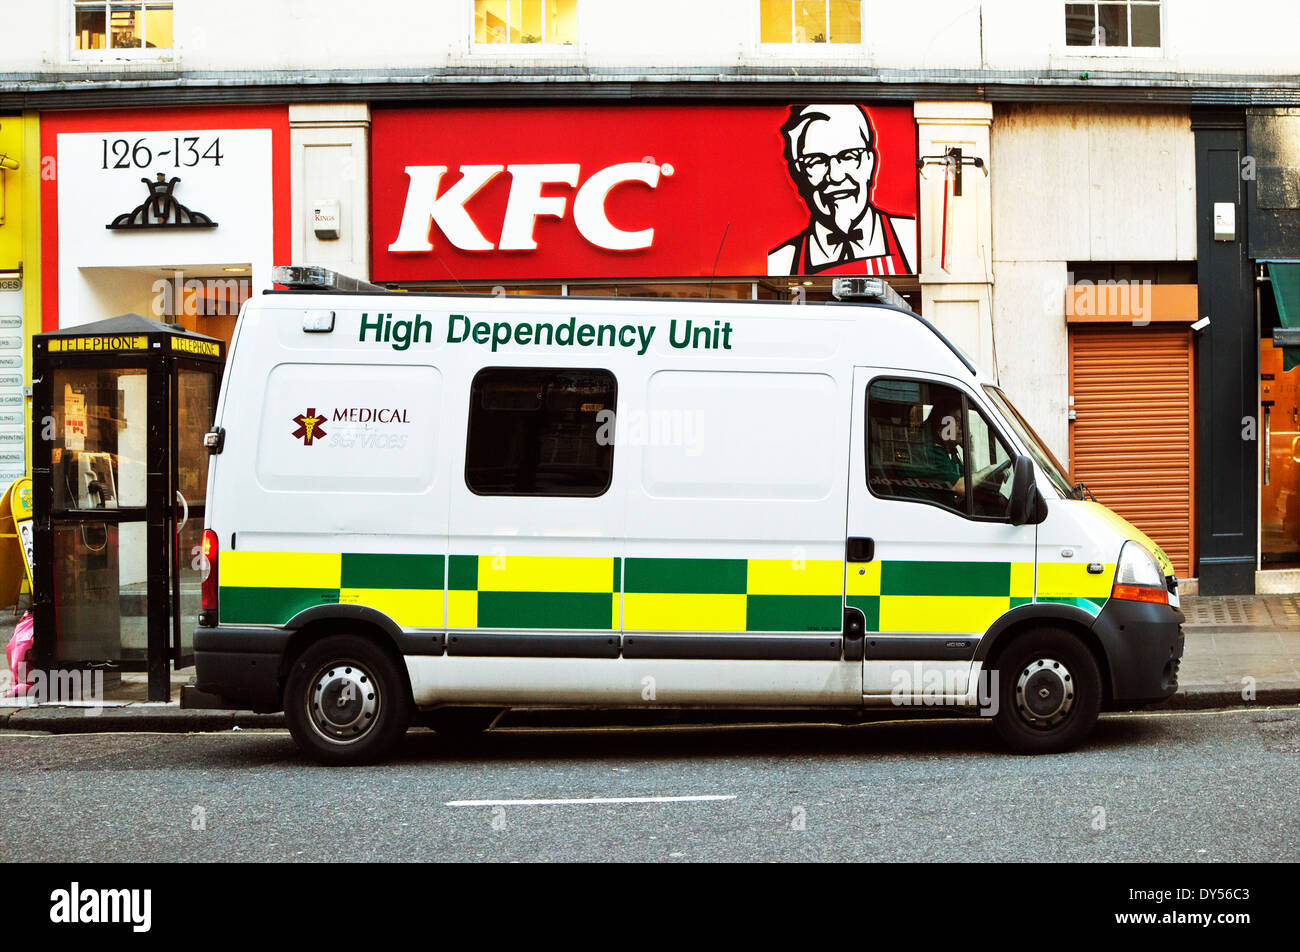 High Dependency ambulance, Baker Street, London, England, UK - Stock Image